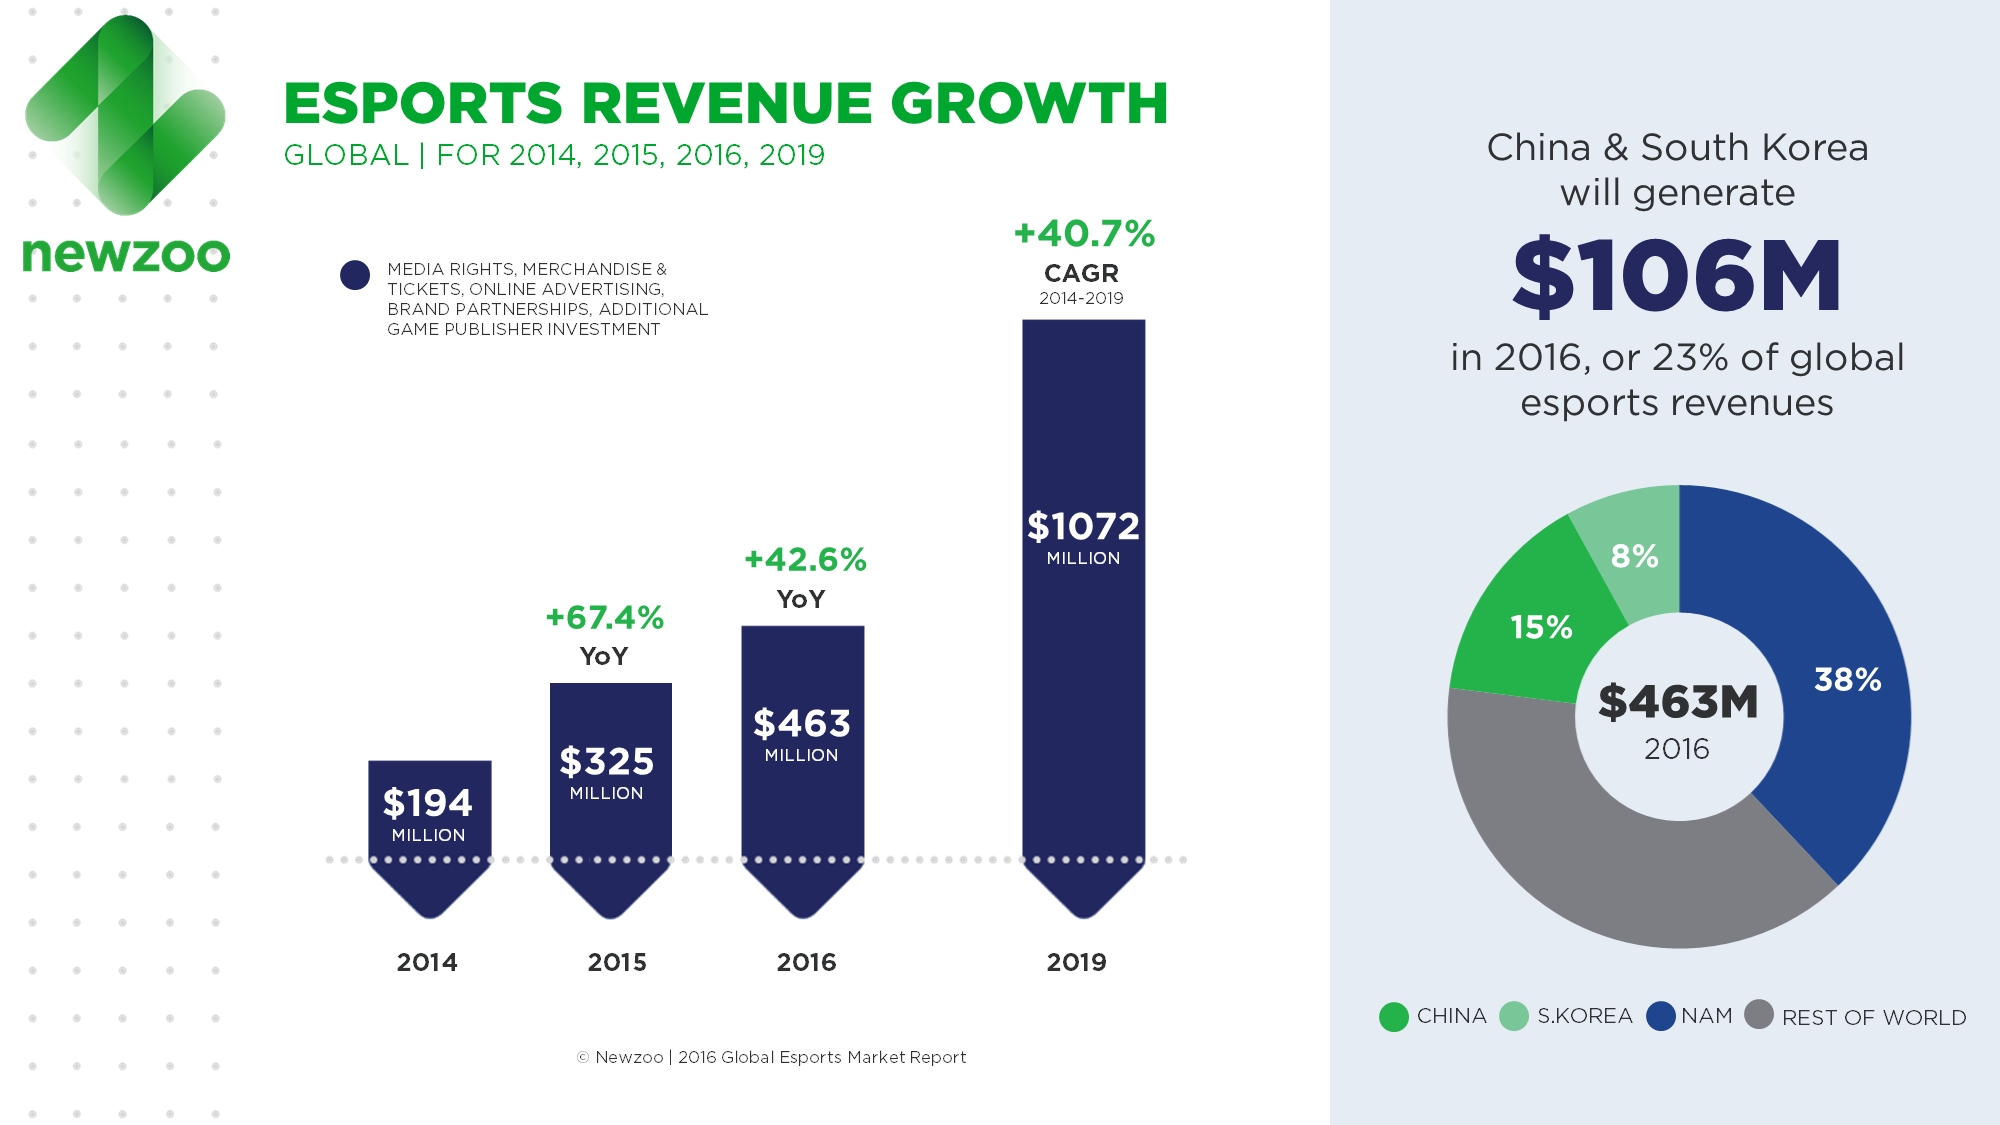 Newzoo_Esports_Report_2016_Revenue_Growth_V4